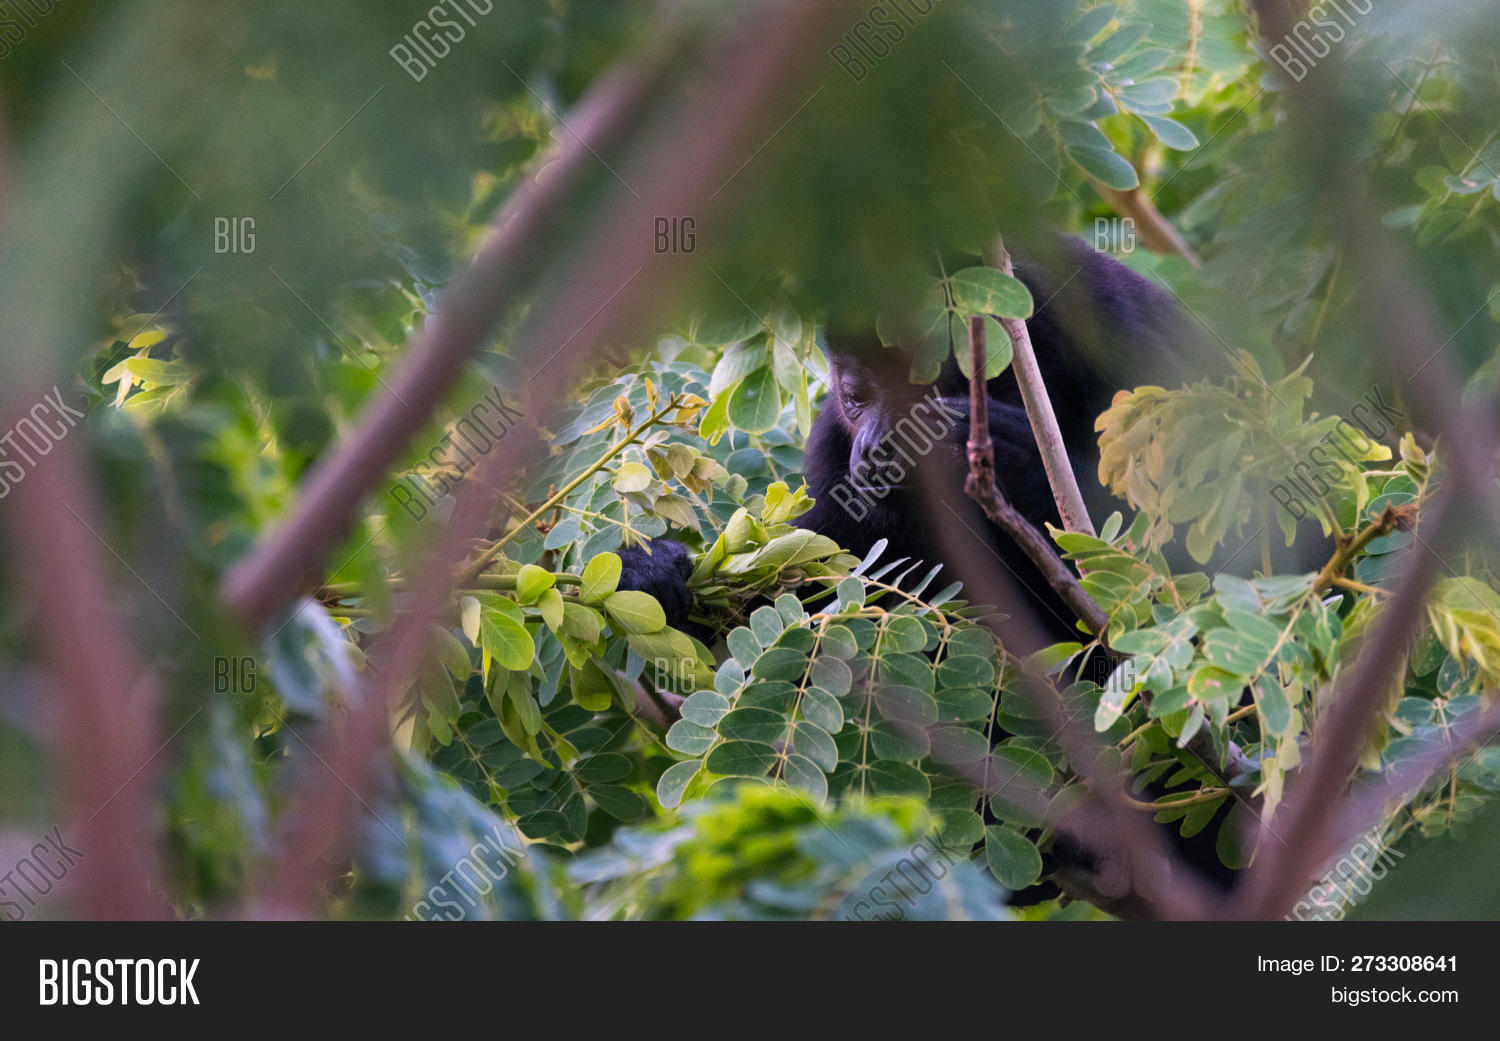 active,adult,agile,alert,animal,black,branches,calm,creature,dark,environment,eyes,face,foraging,forest,fur,furry,green,habitat,hairy,head,howler,jungle,large,leaves,mammal,mango,monkey,nature,primate,social,strong,tail,tree,treetop,tropical,wild,wildlife